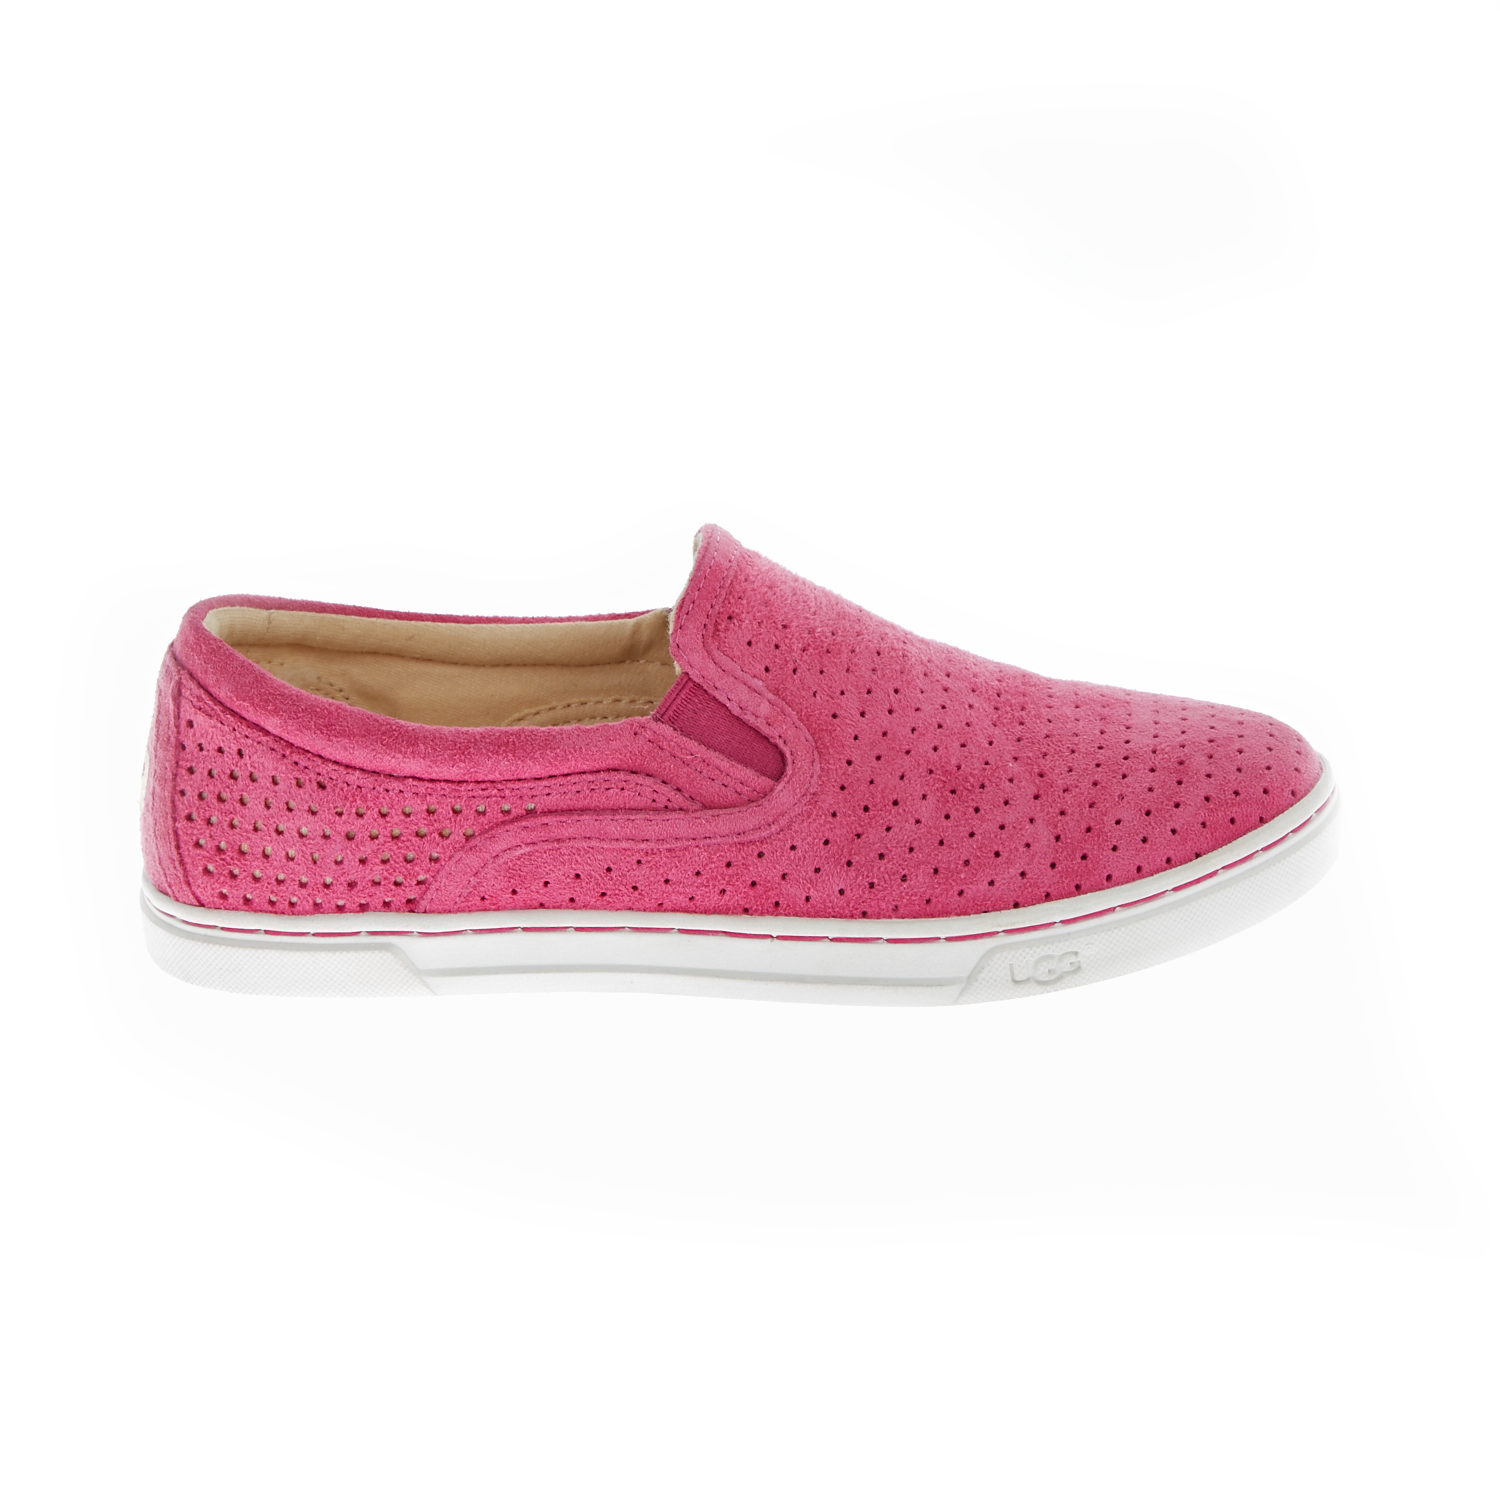 UGG AUSTRALIA – Γυναικεία slip-on sneakers UGG FIERCE GEO ροζ